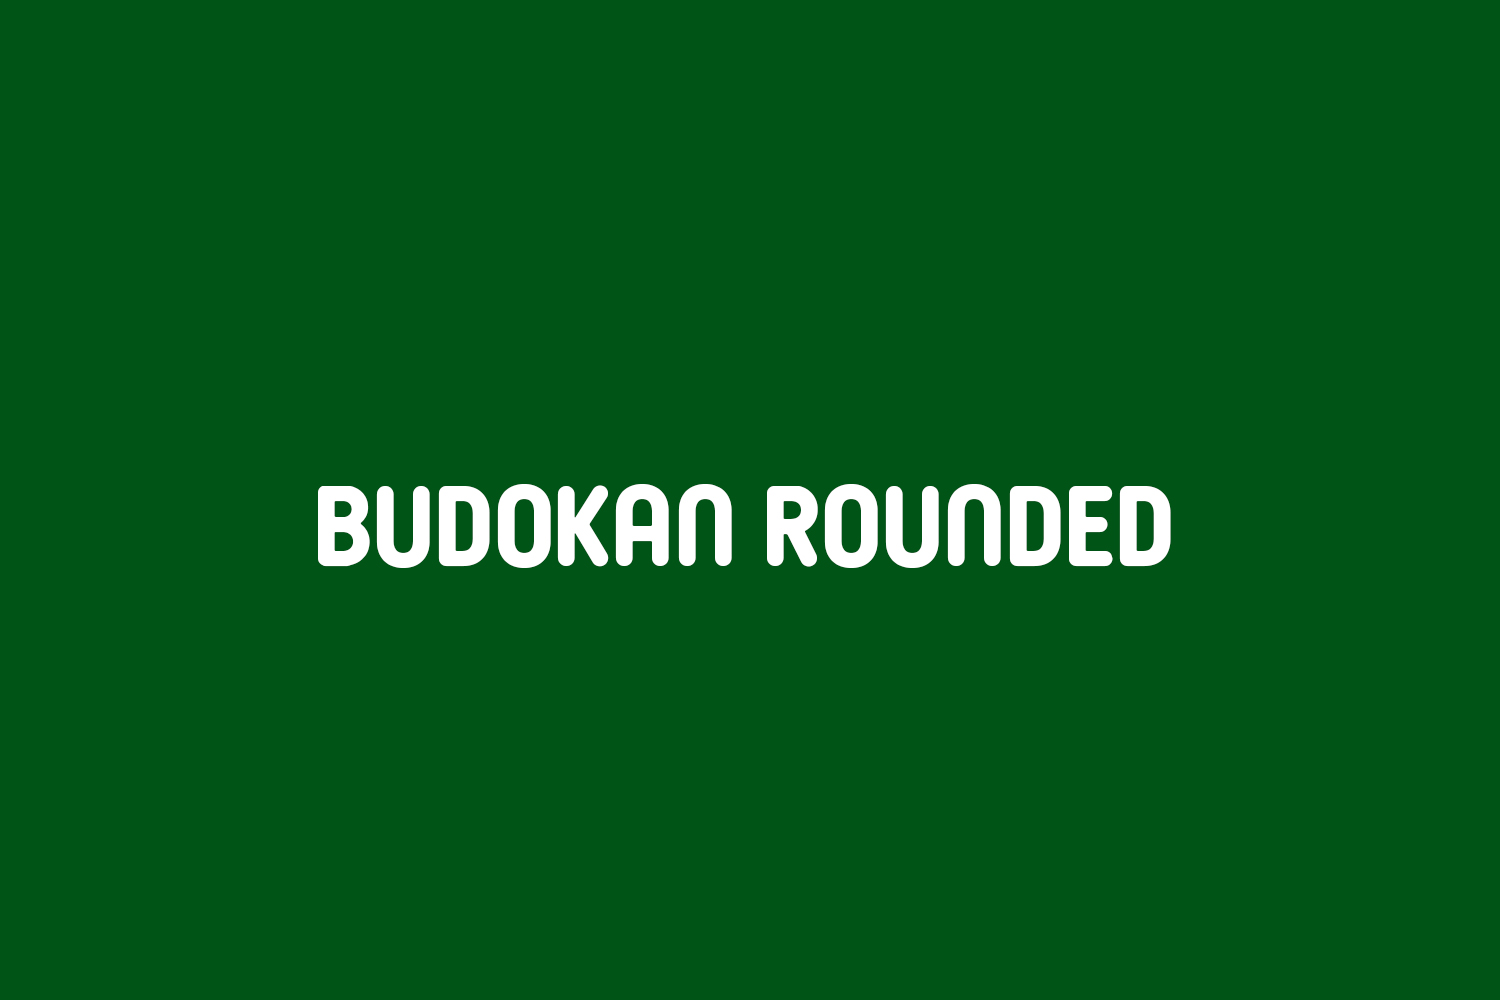 Budokan Rounded Free Font